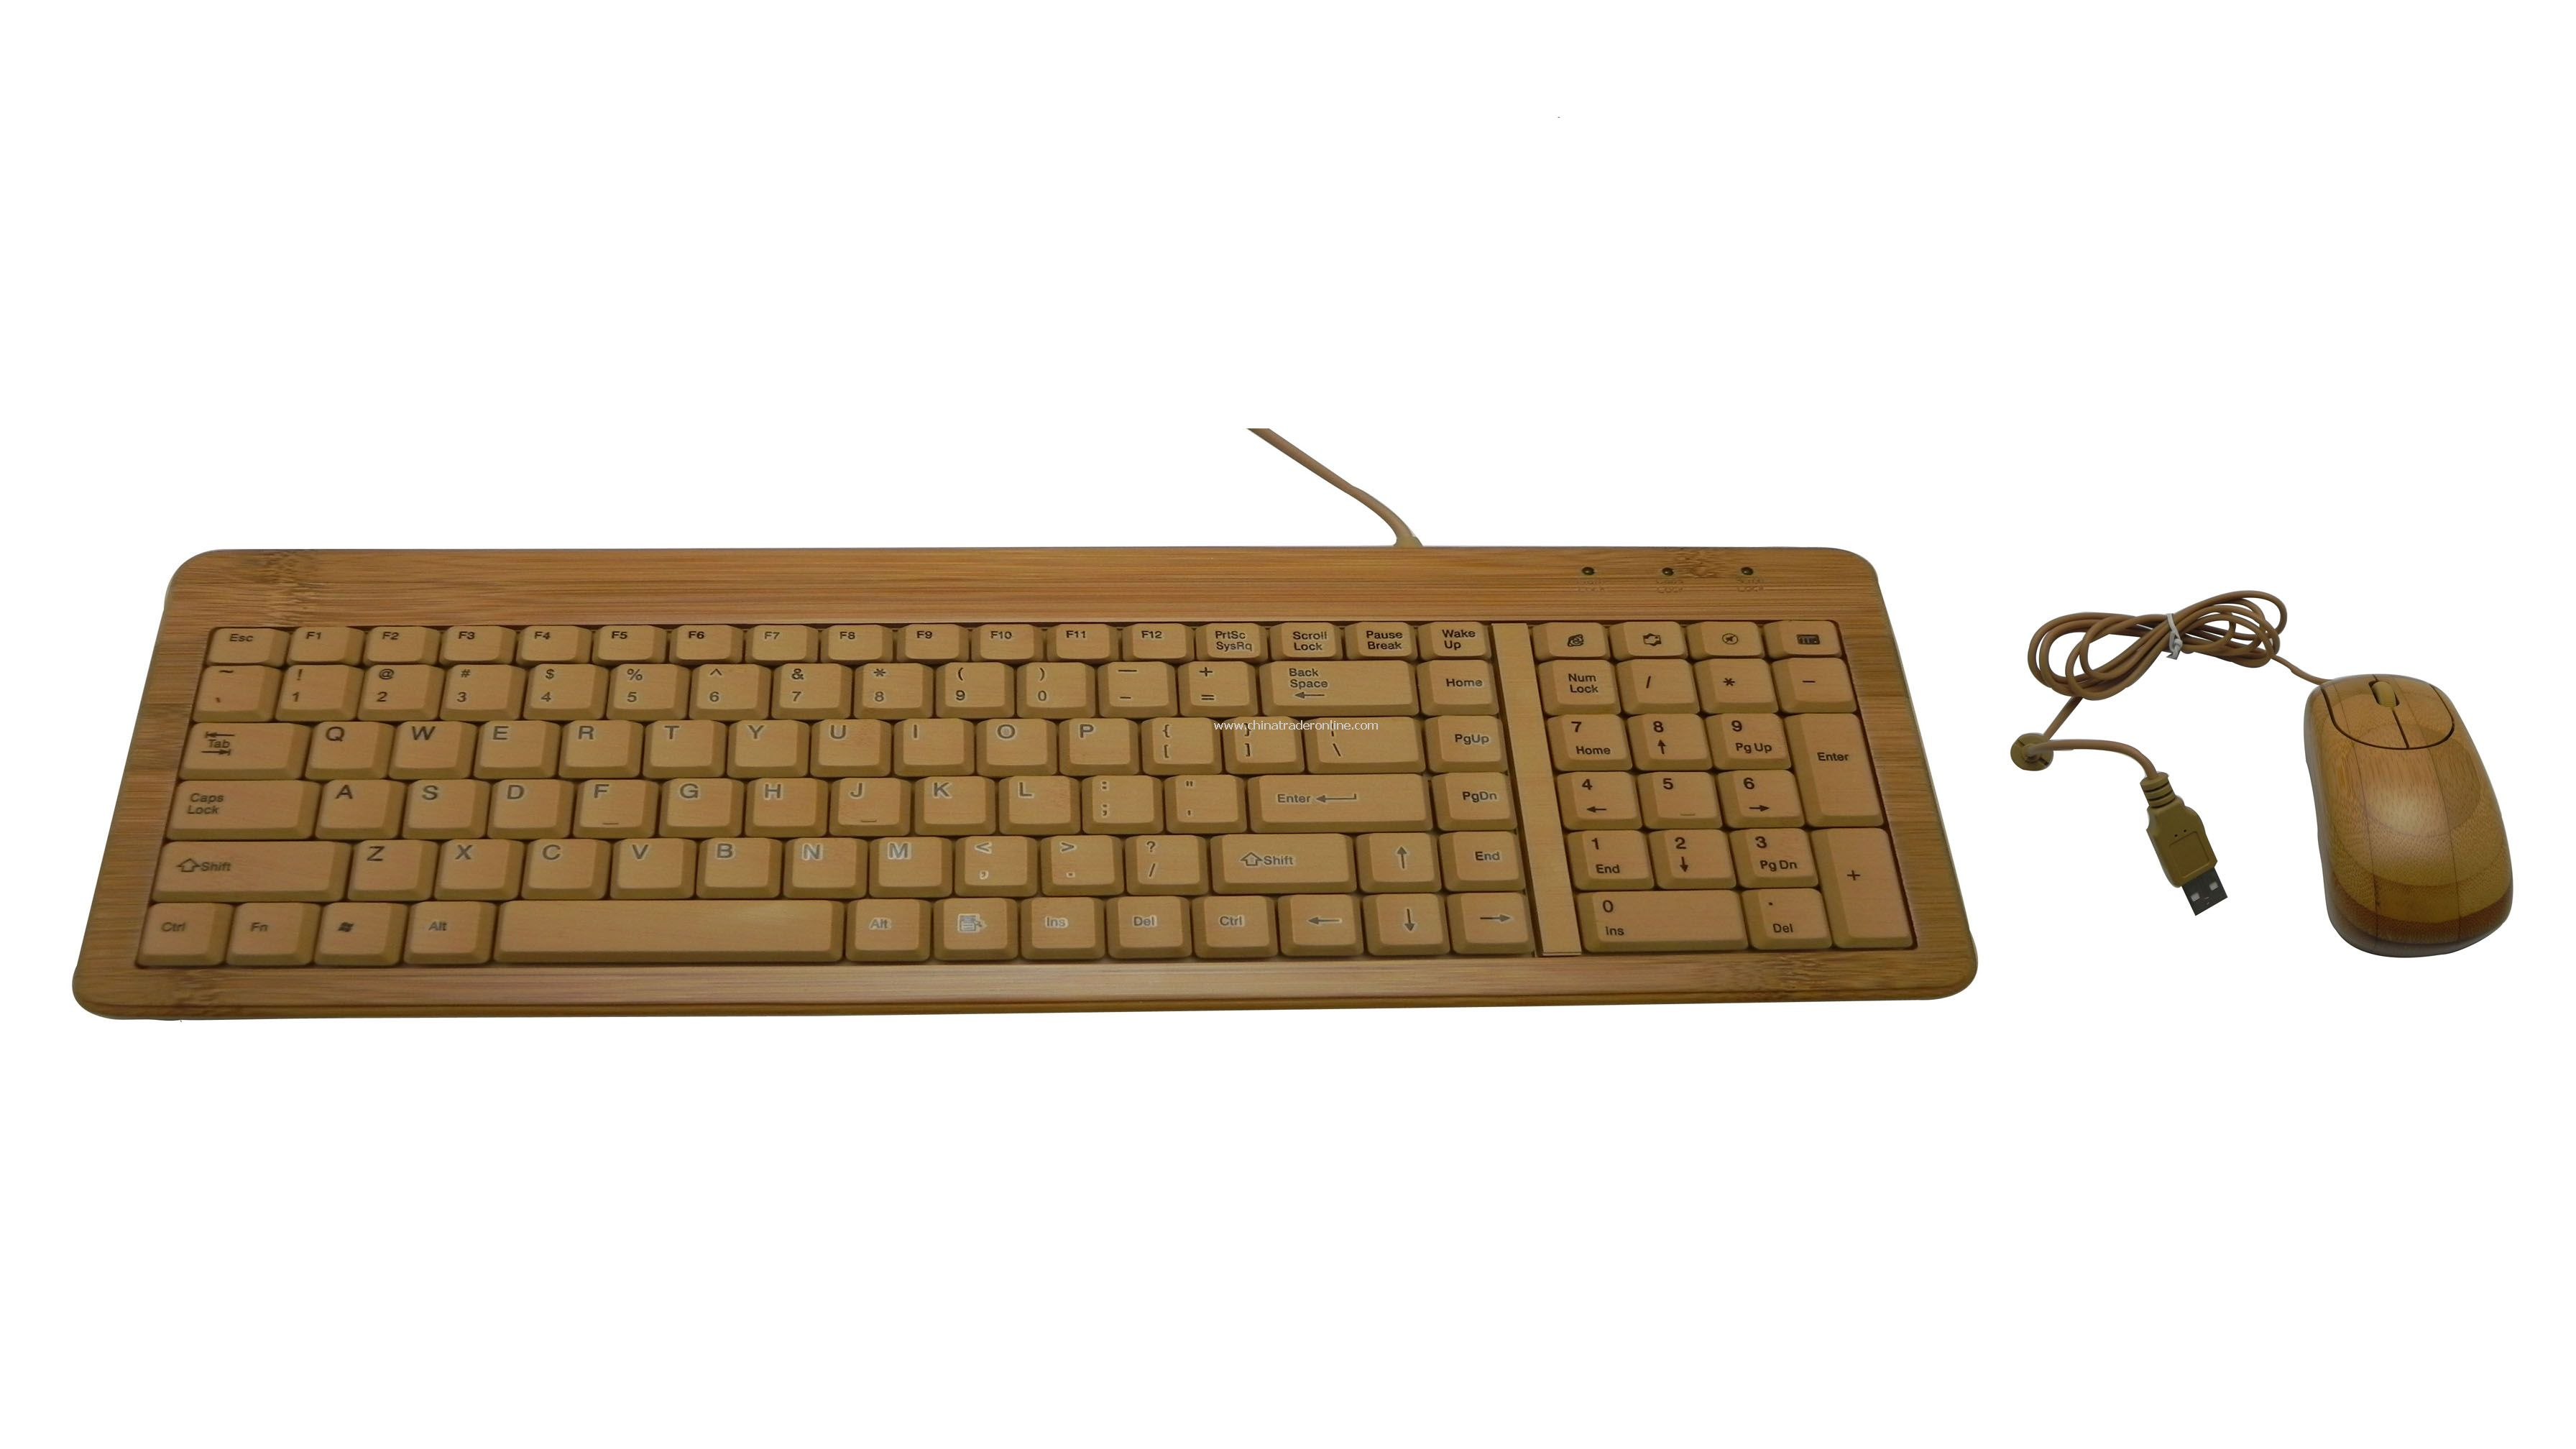 NEW Bamboo Keyboard and Mouse - USB Wired Keyboard